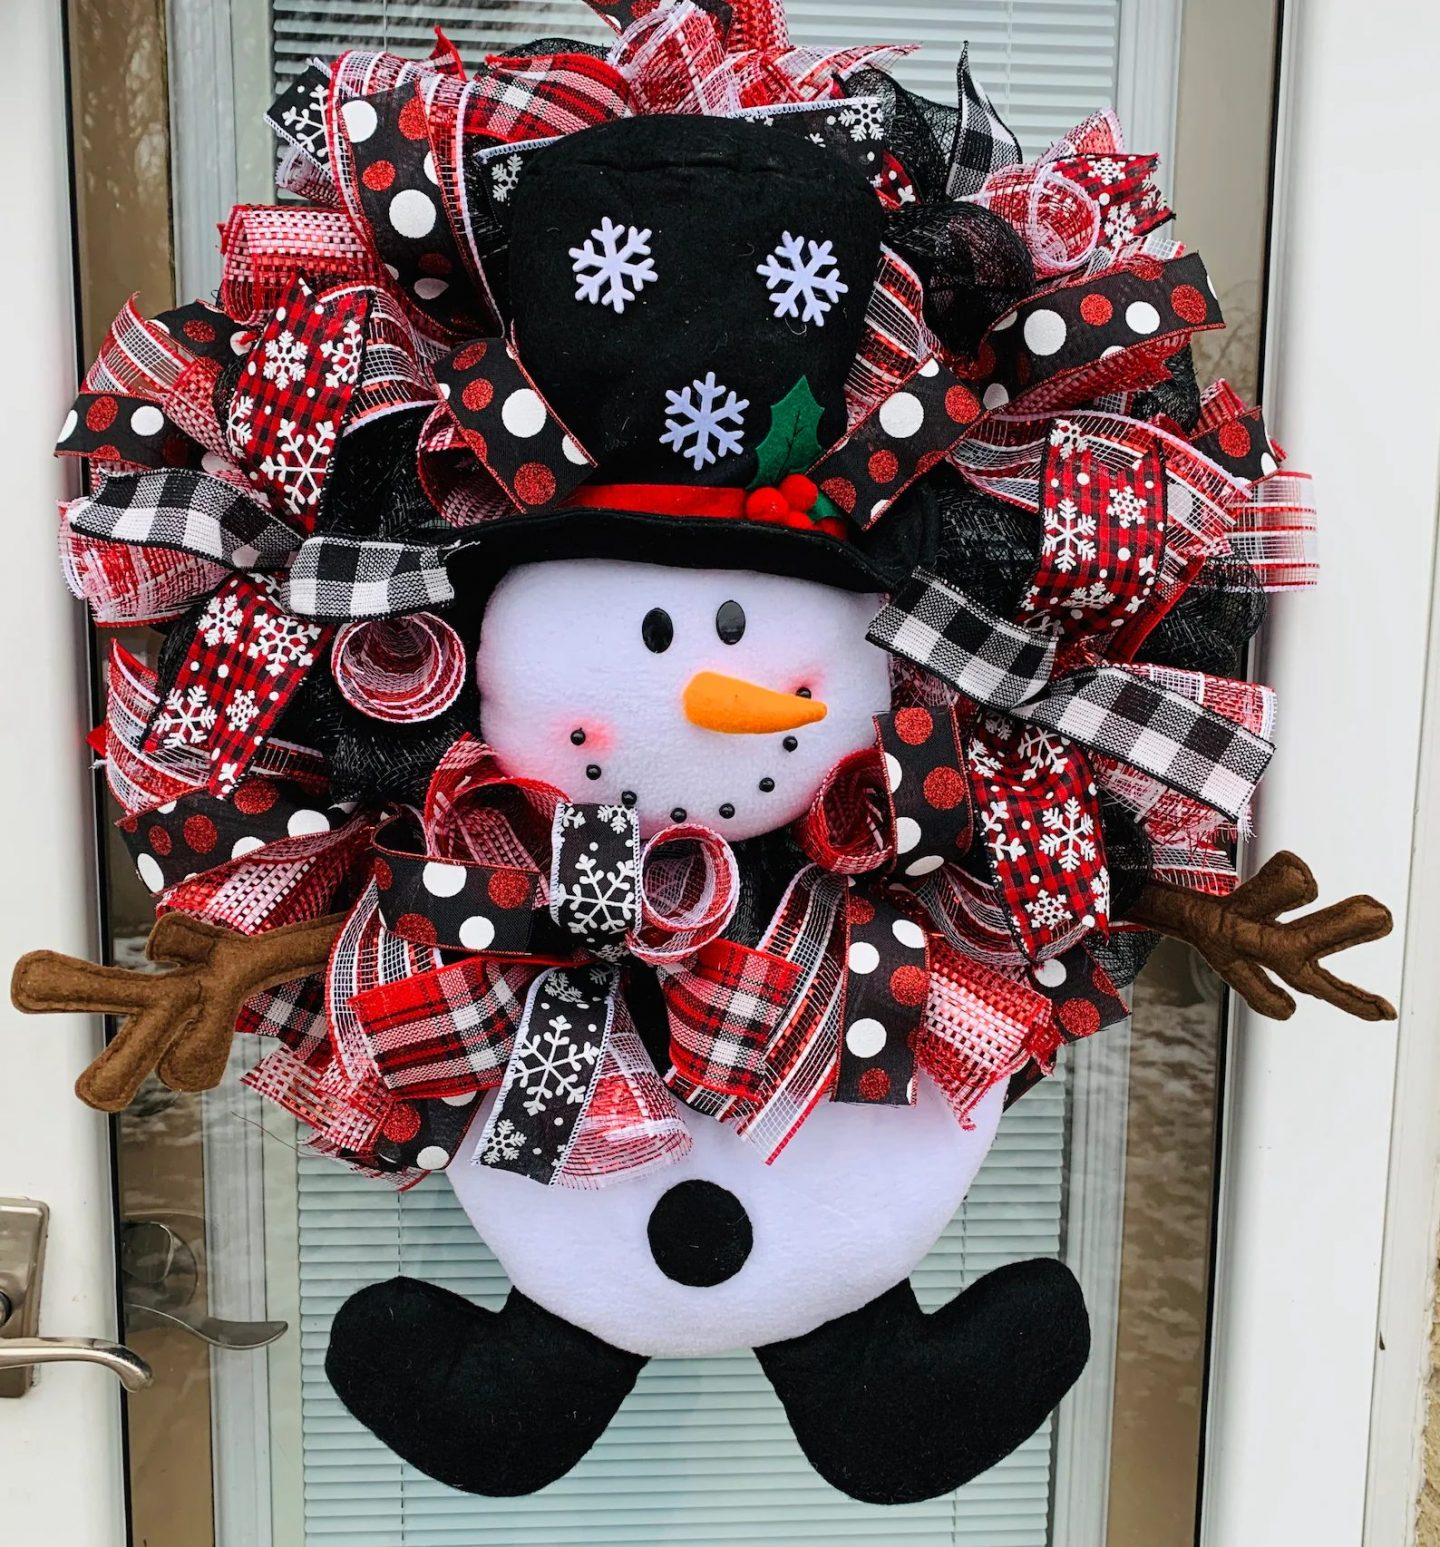 Black and red snowman wreath with deco mesh